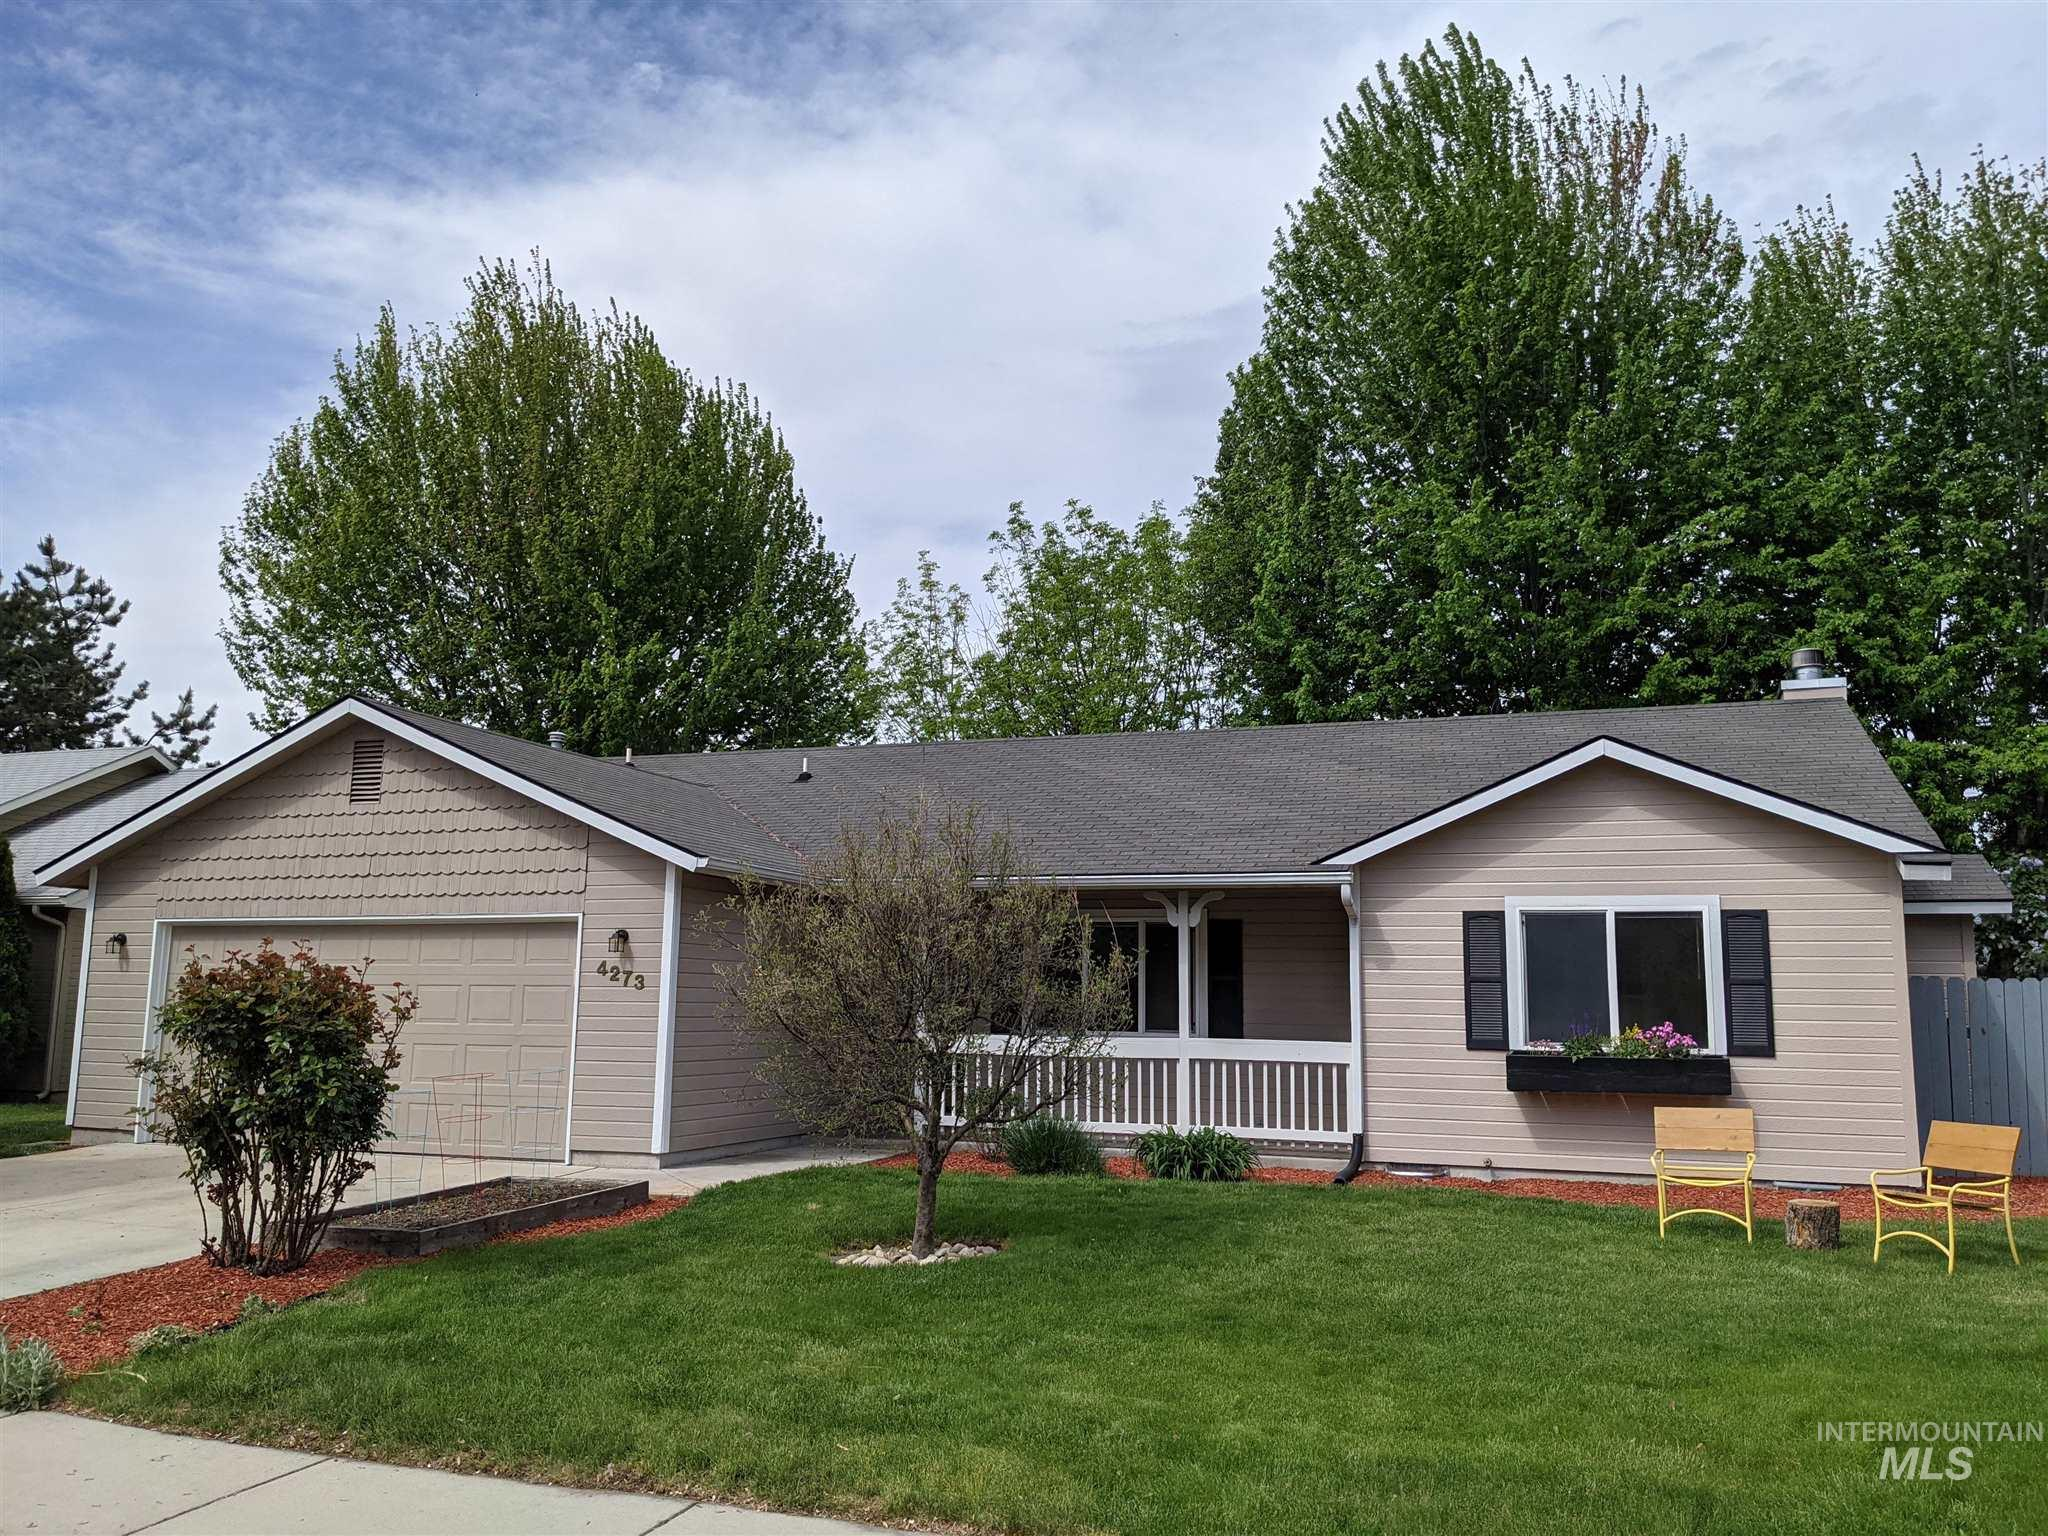 4273 N Sandcastle Place Property Photo - Boise, ID real estate listing